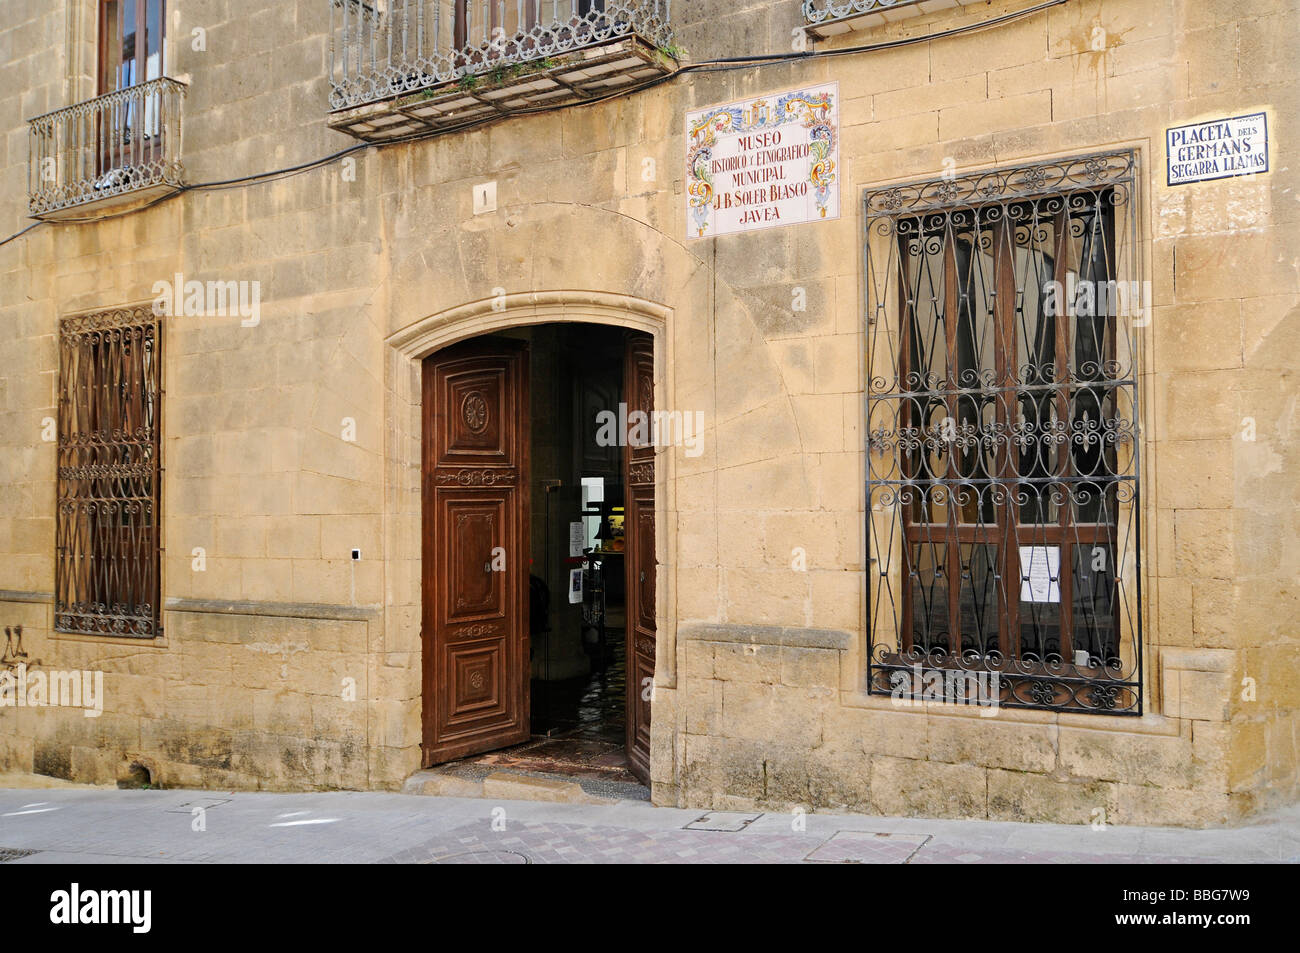 Museo Arqueológico y Etnografico Soler Blascoy, historical, archaeological and ethnographic museum, old town, Javea, Stock Photo